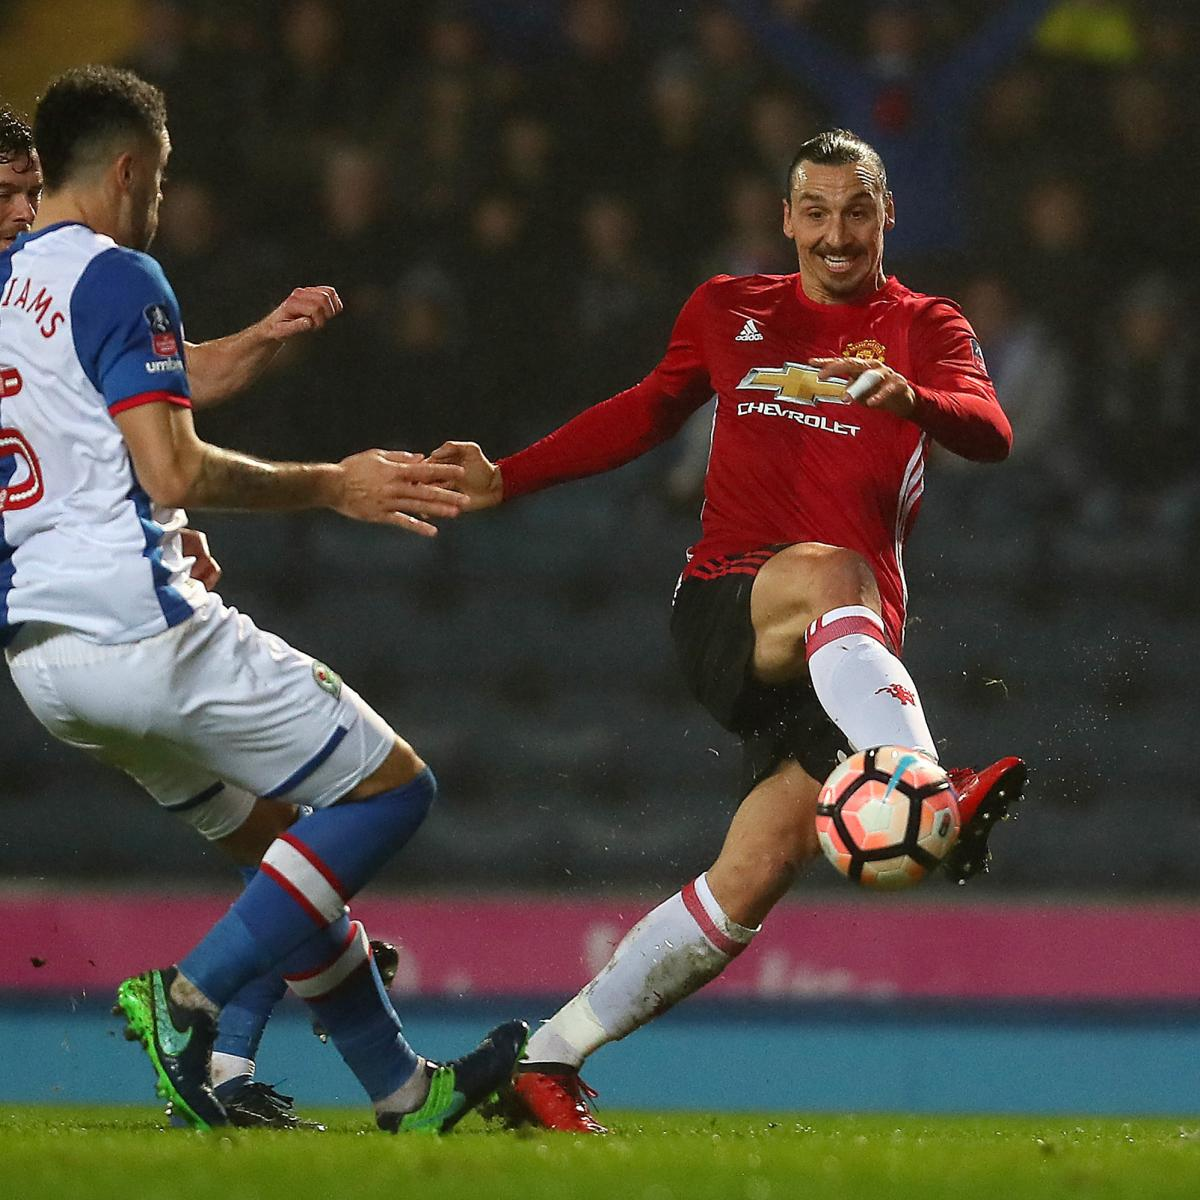 Manchester United 3 1 Huddersfield Result: FA Cup 2017: 5th-Round Results, Scores, Updated Schedule